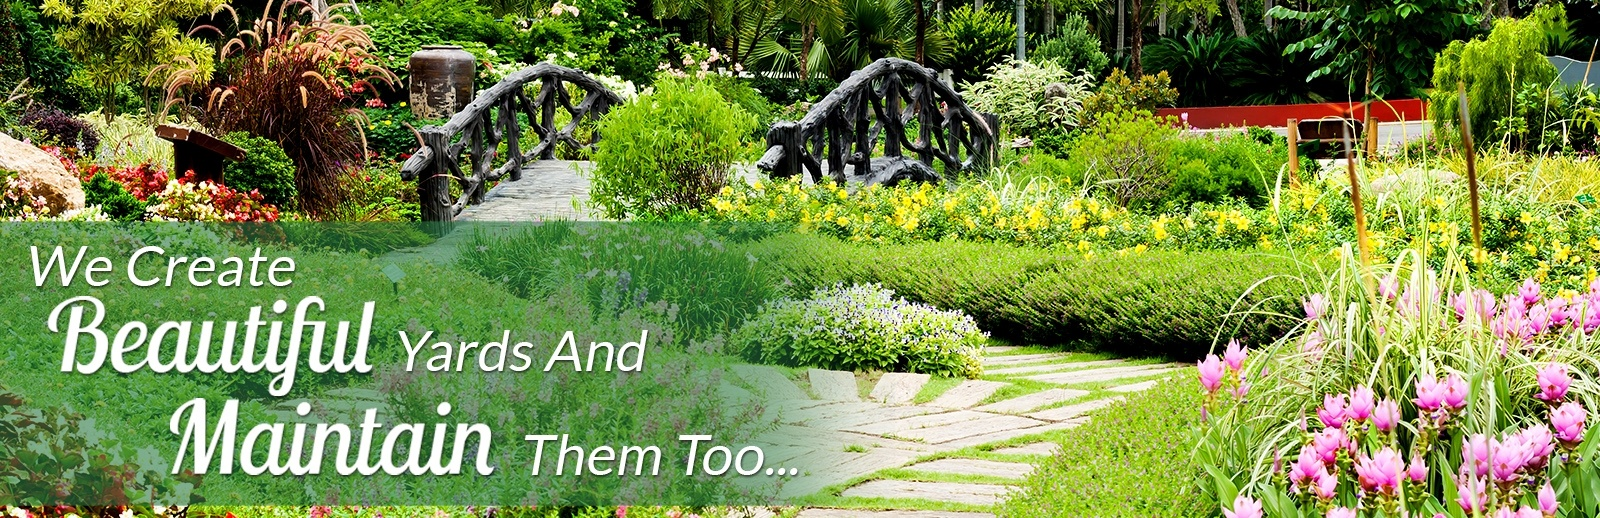 Green Touch Landscaping Ltd Landscaping Services In Edmonton Ab